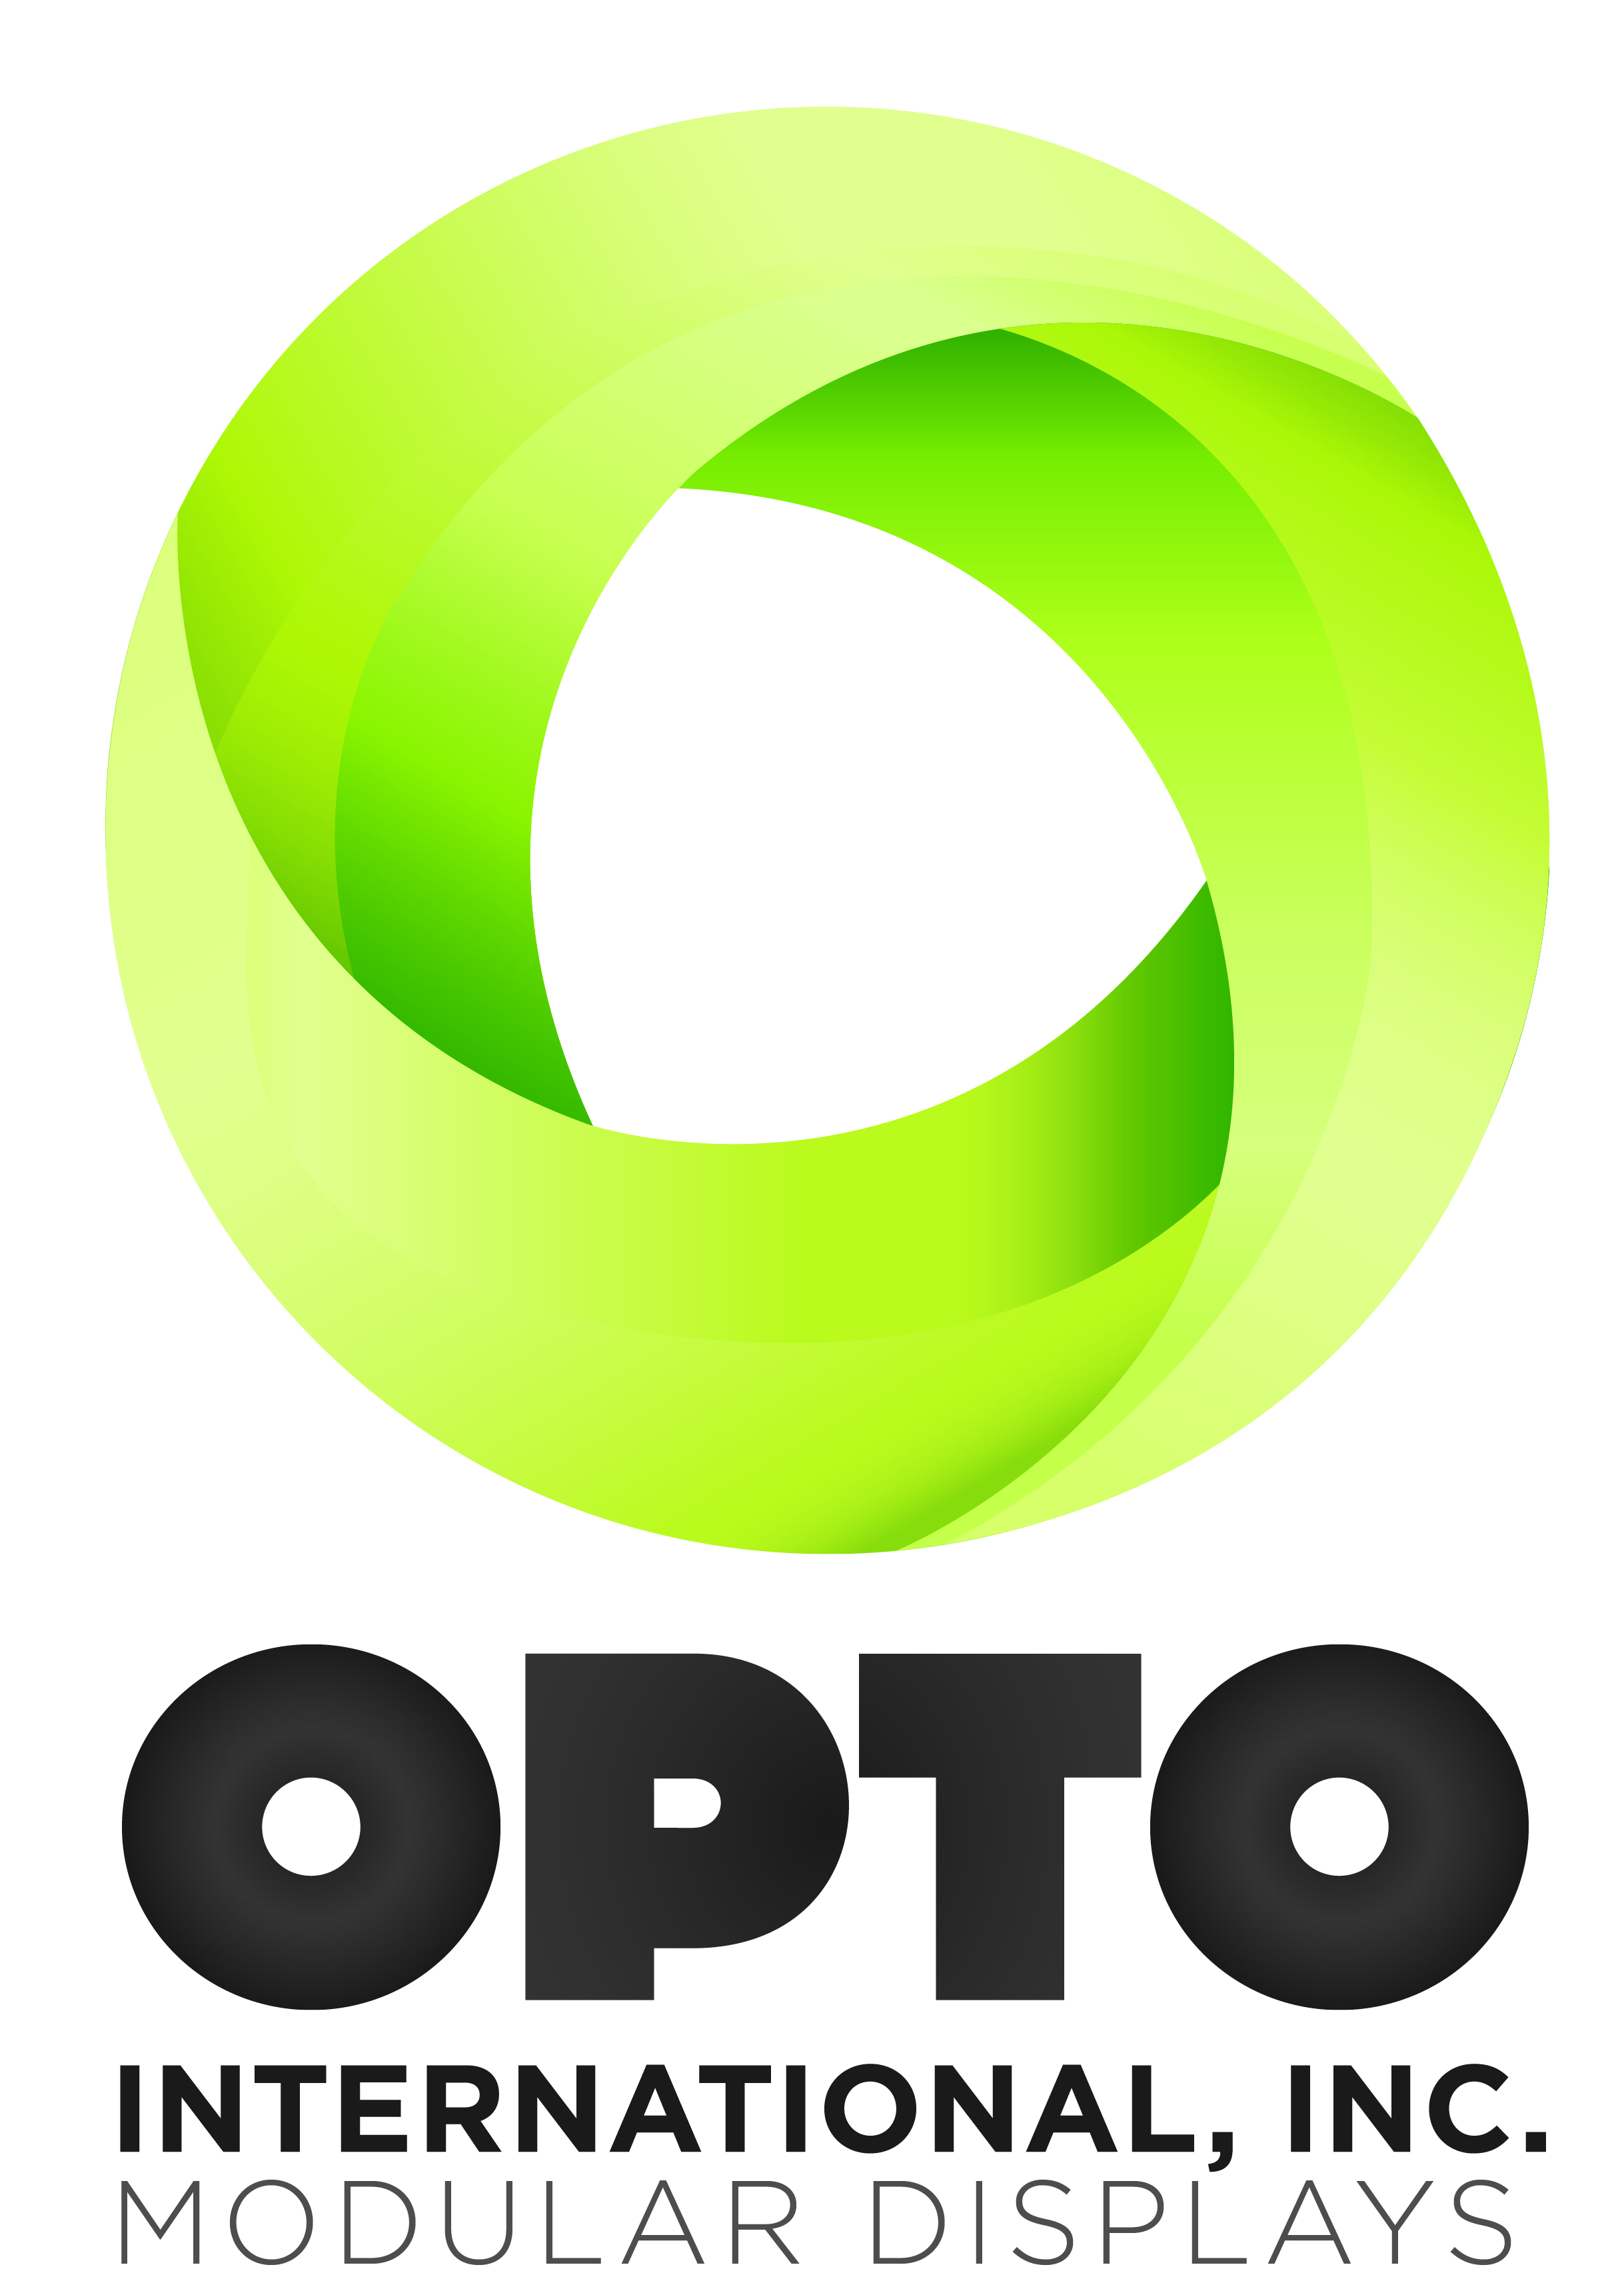 2012_OPTO_Corporate_square_CMYK.jpg